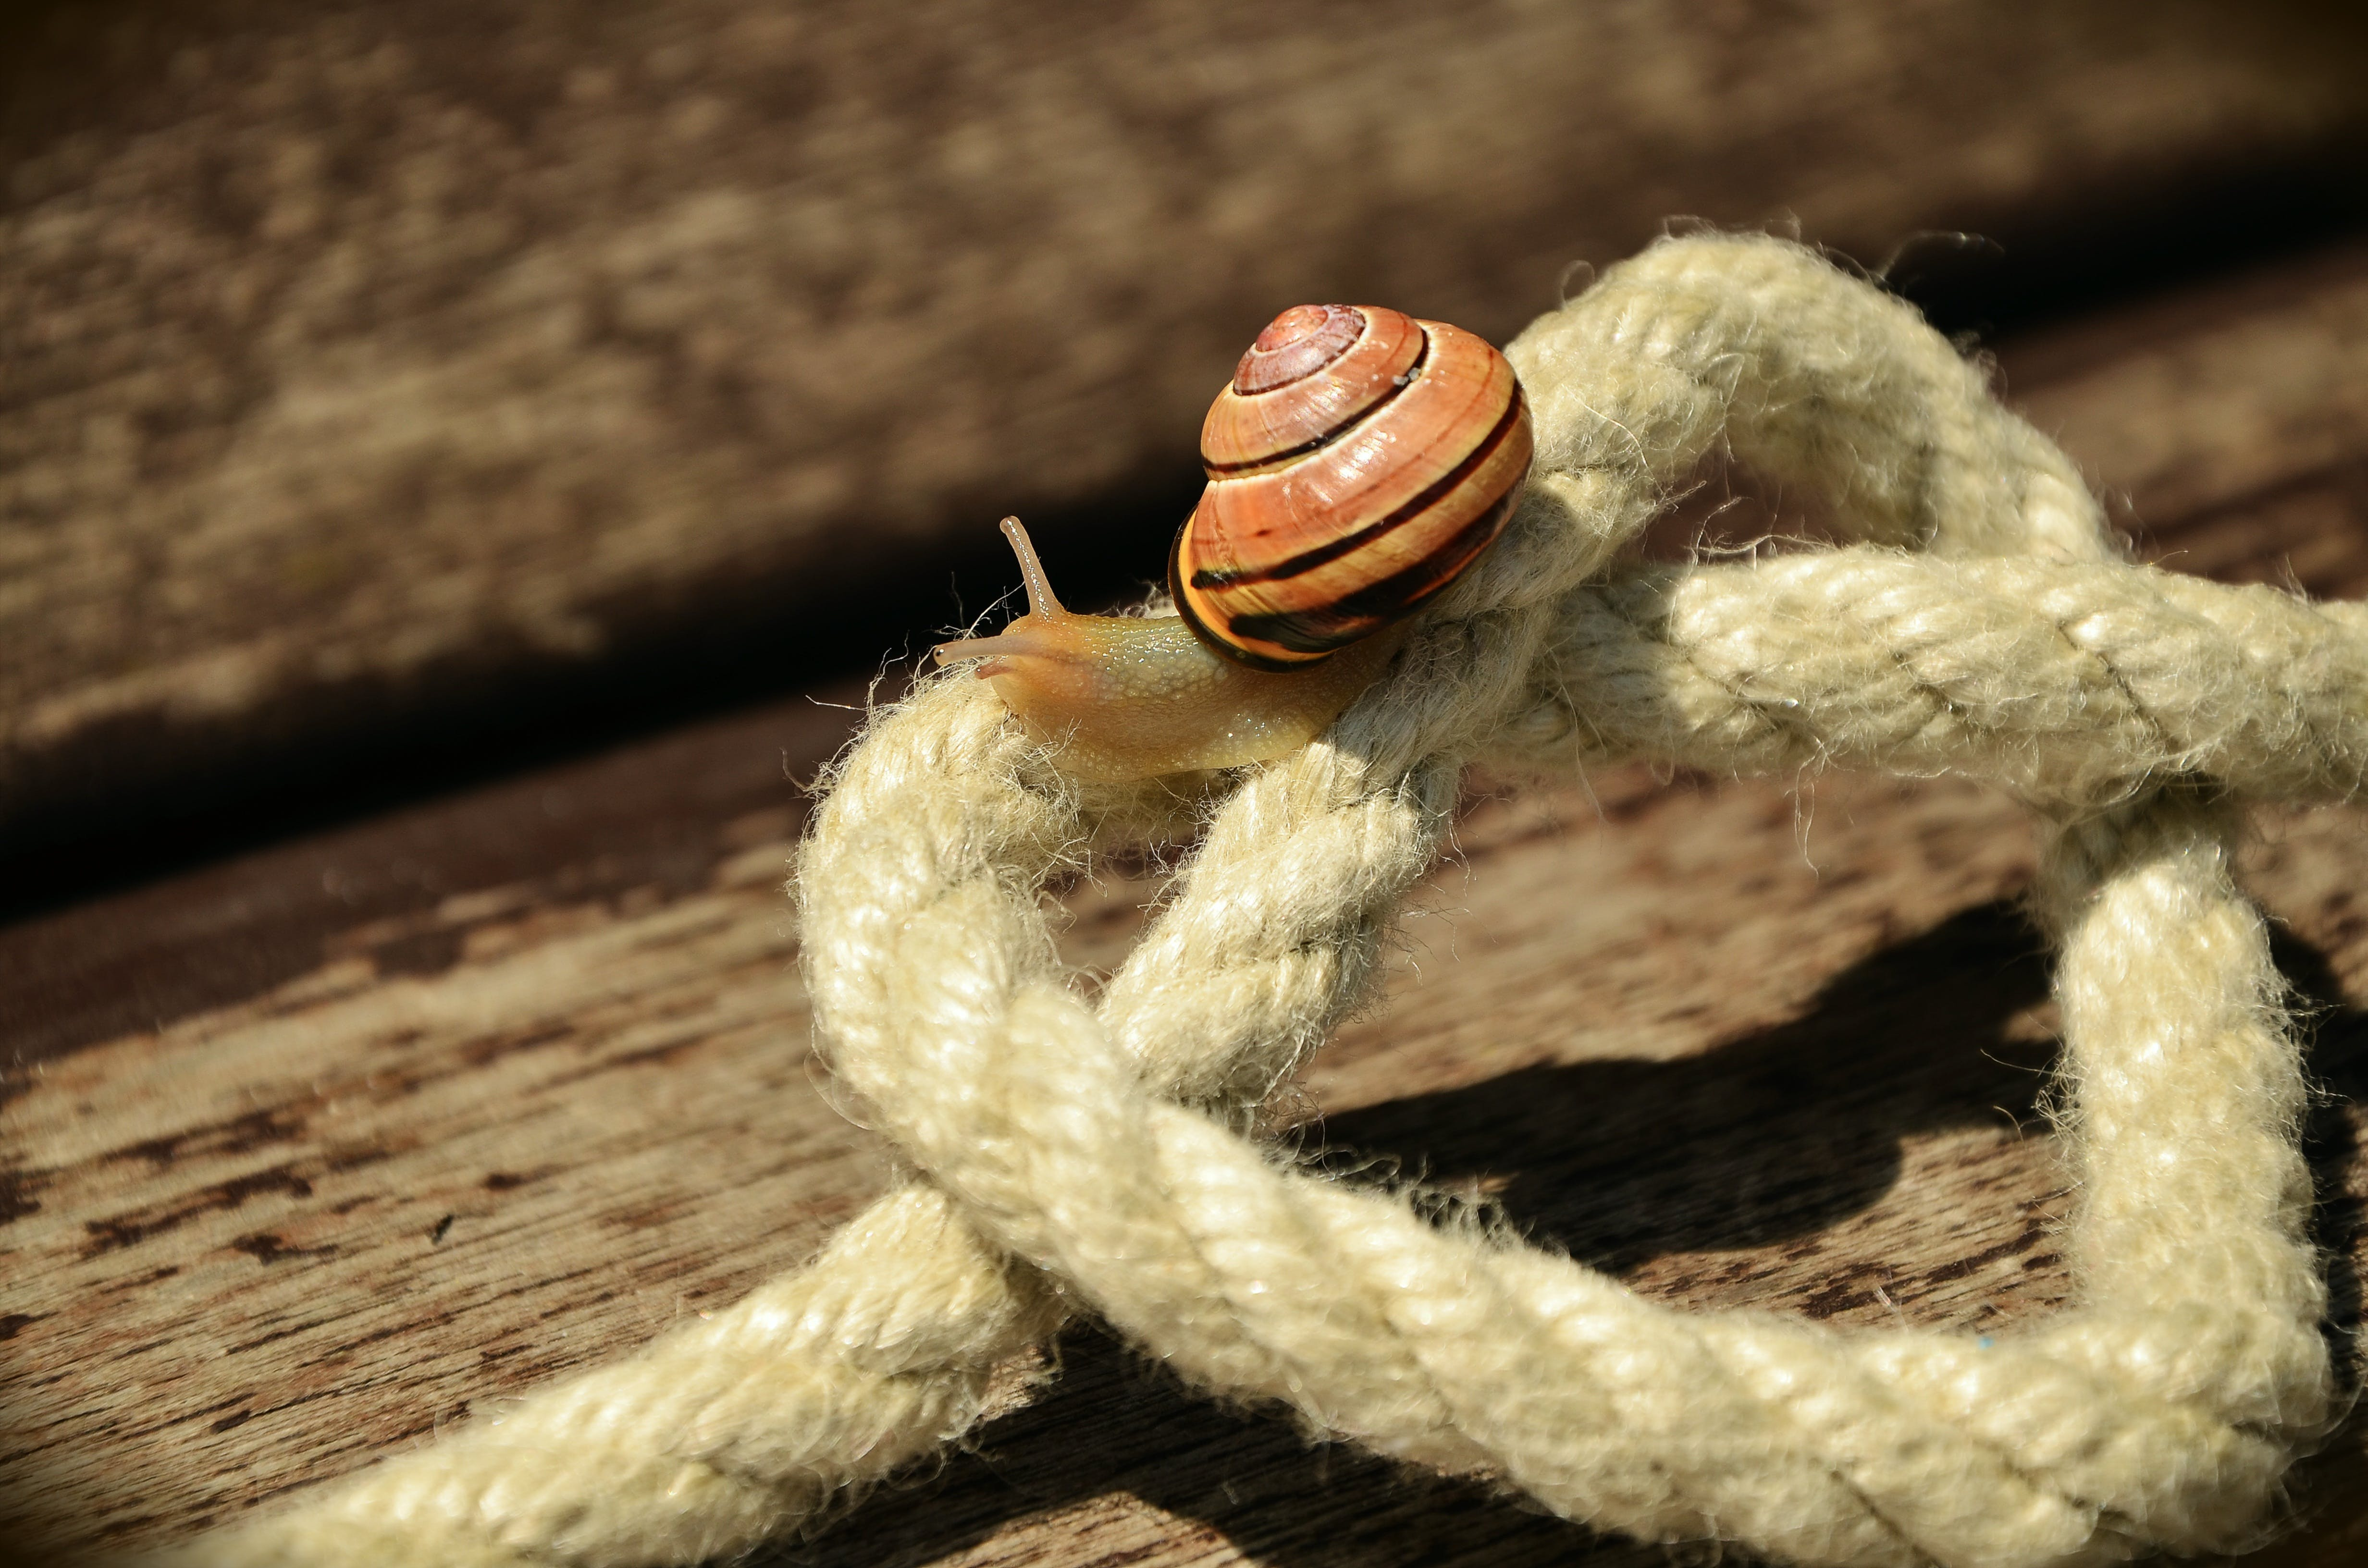 Snail on White Square Knot Rope